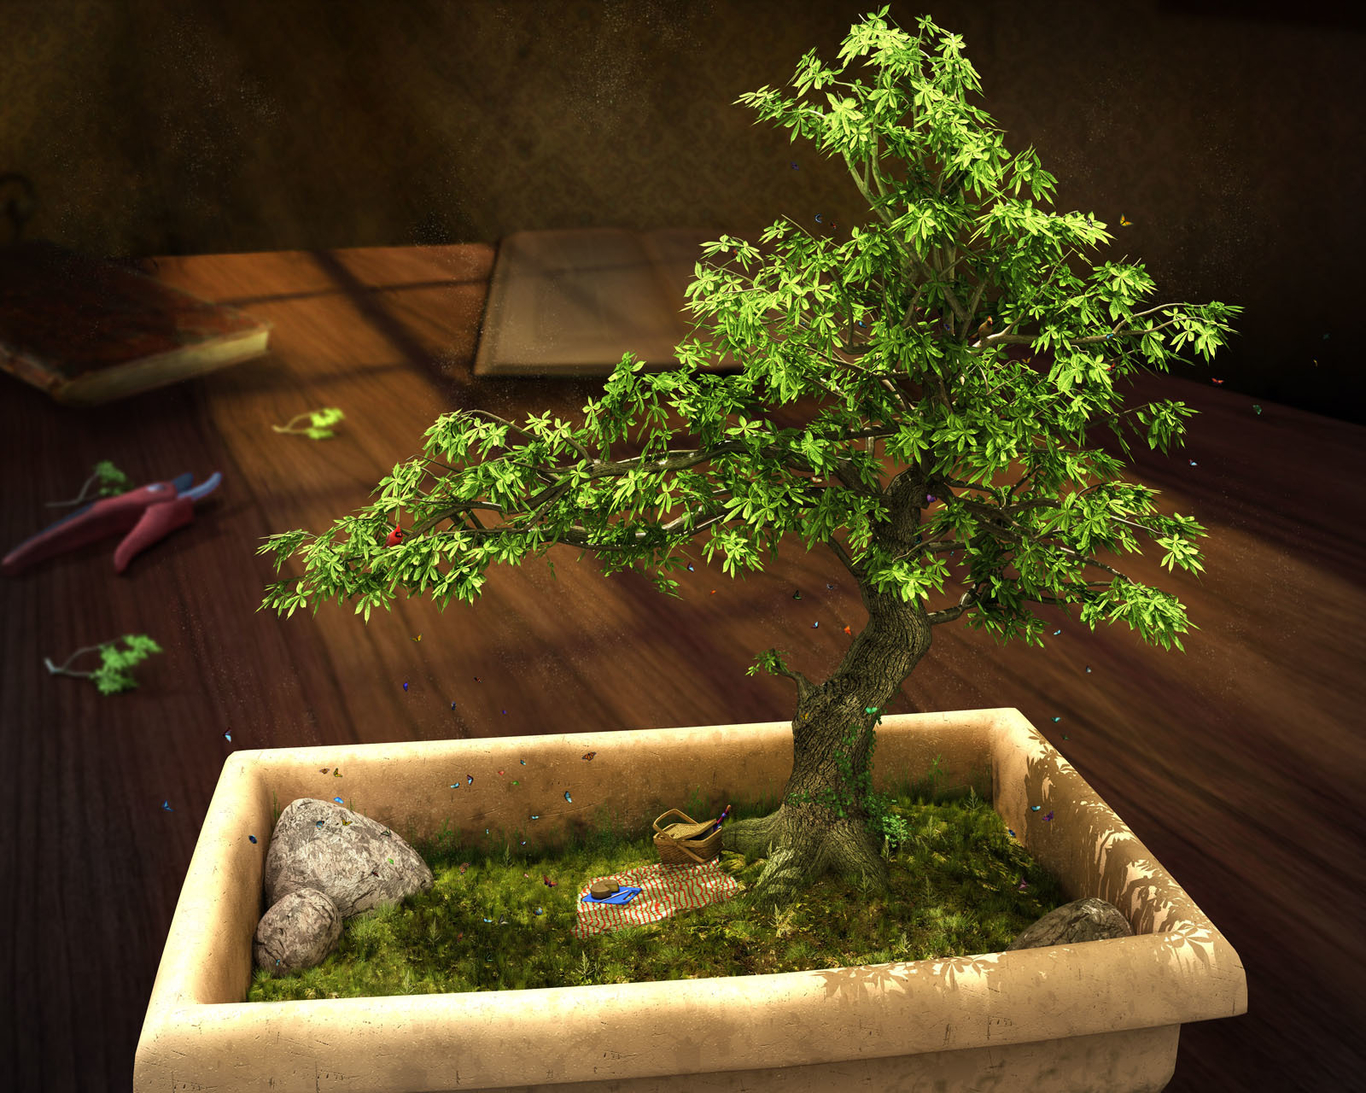 Chrislomaka giants bonsai interi 1 15b15b14 pqwg